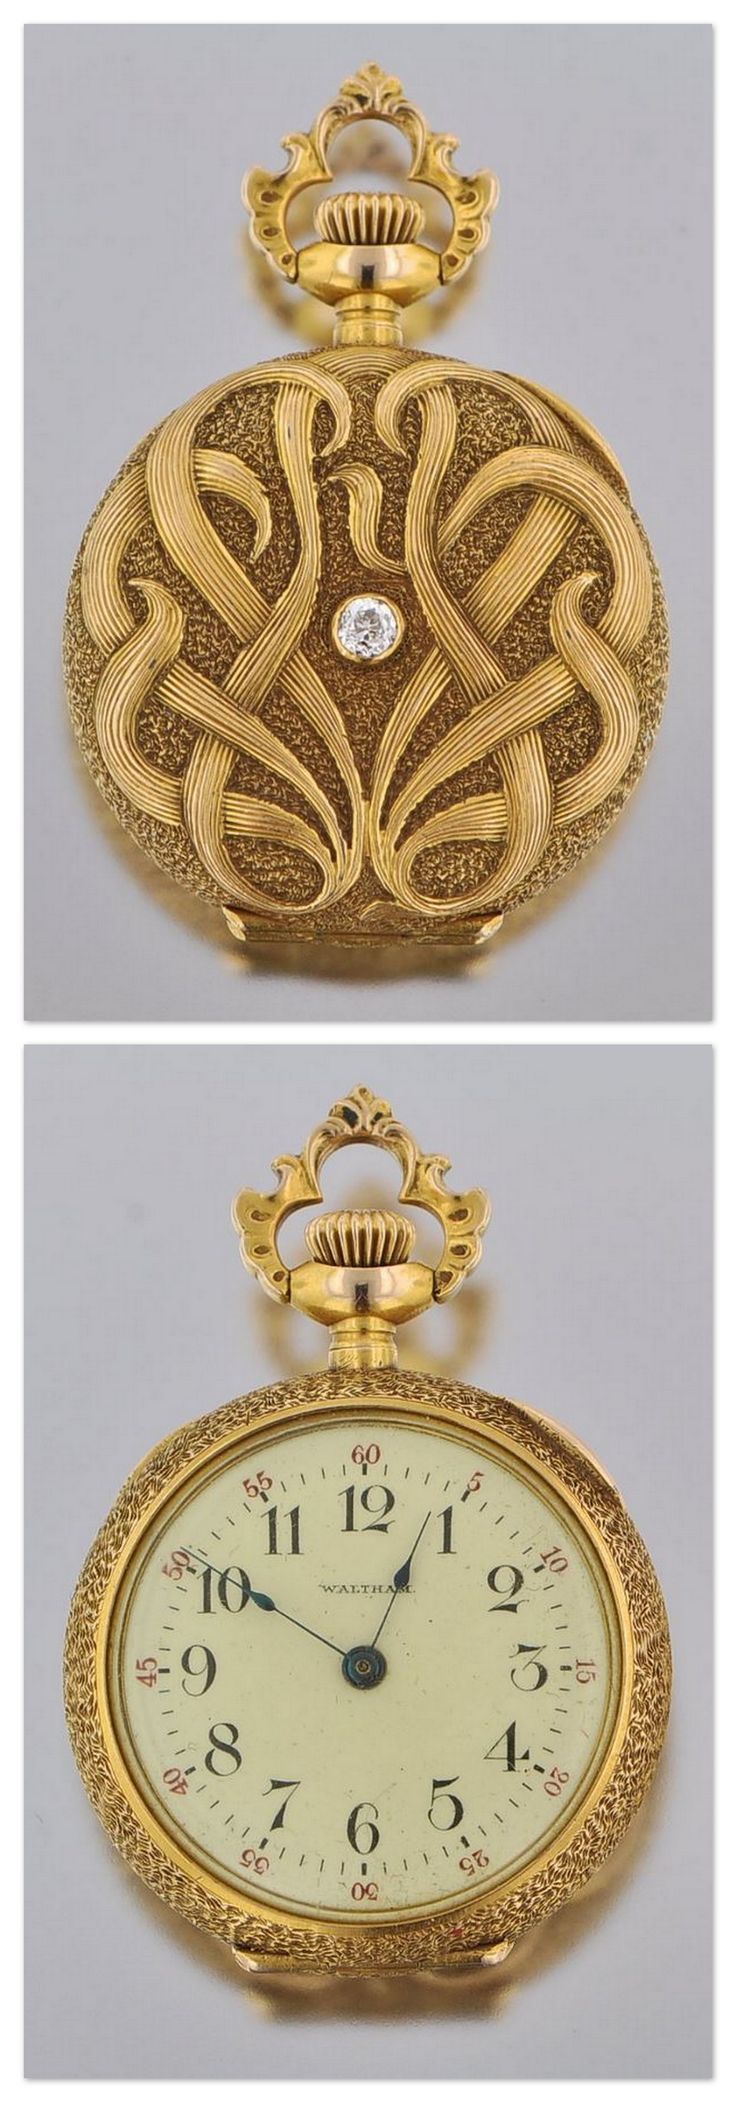 An Art Nouveau Gold and Diamond Pocket Watch by Waltham, American, ca. 1900.